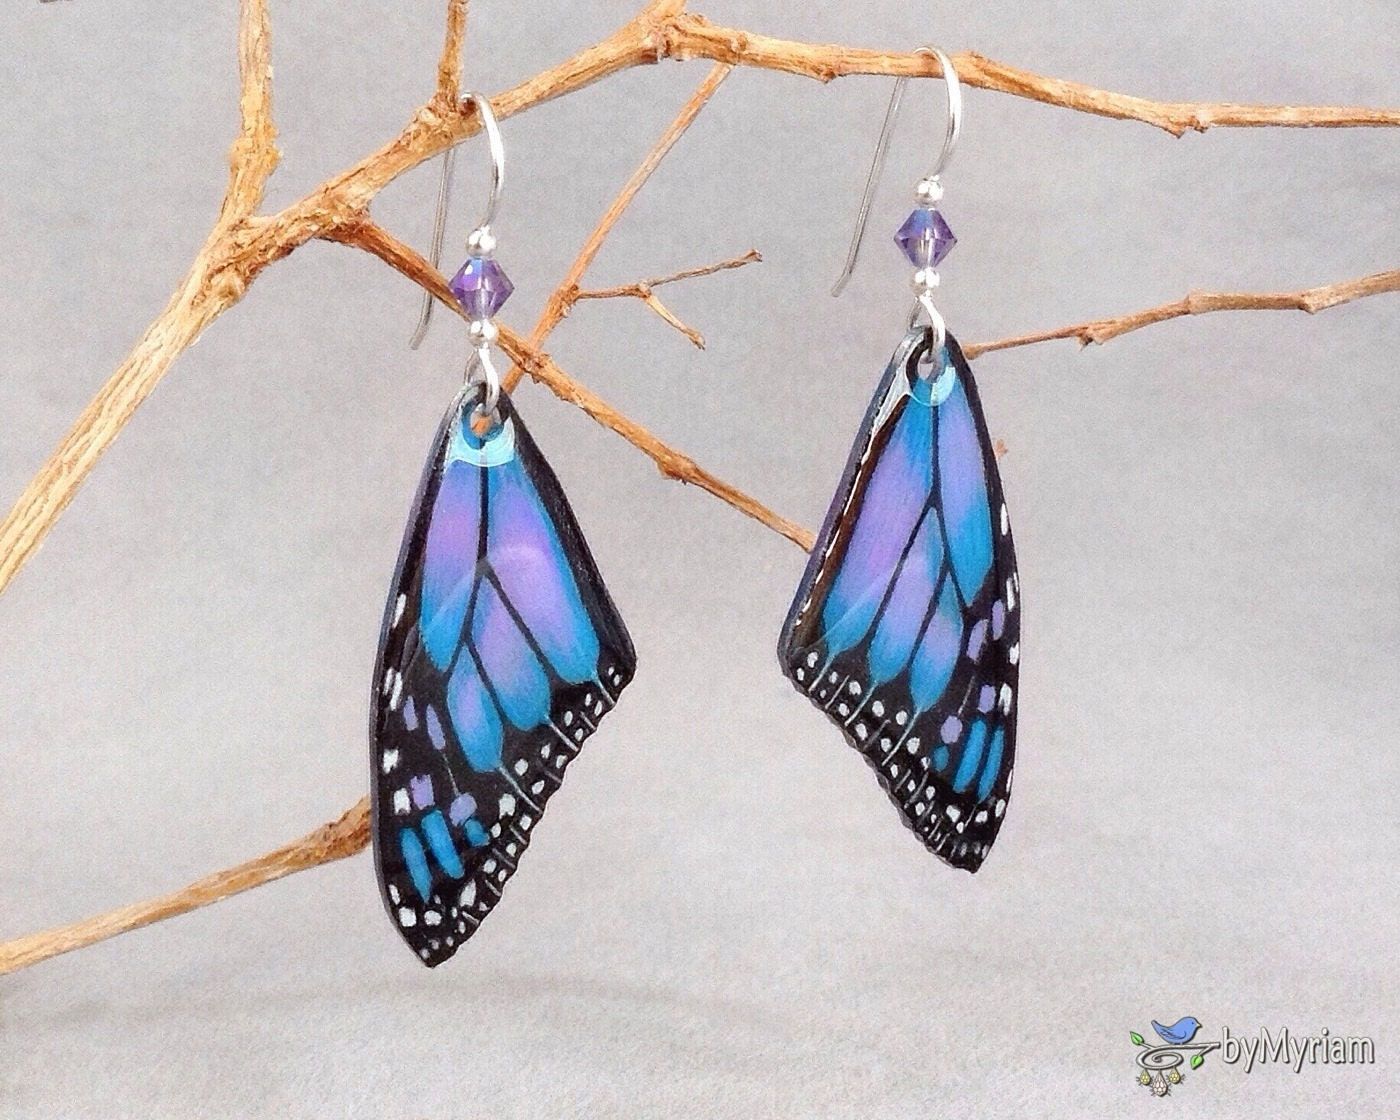 Fantasy butterfly wings - photo#52